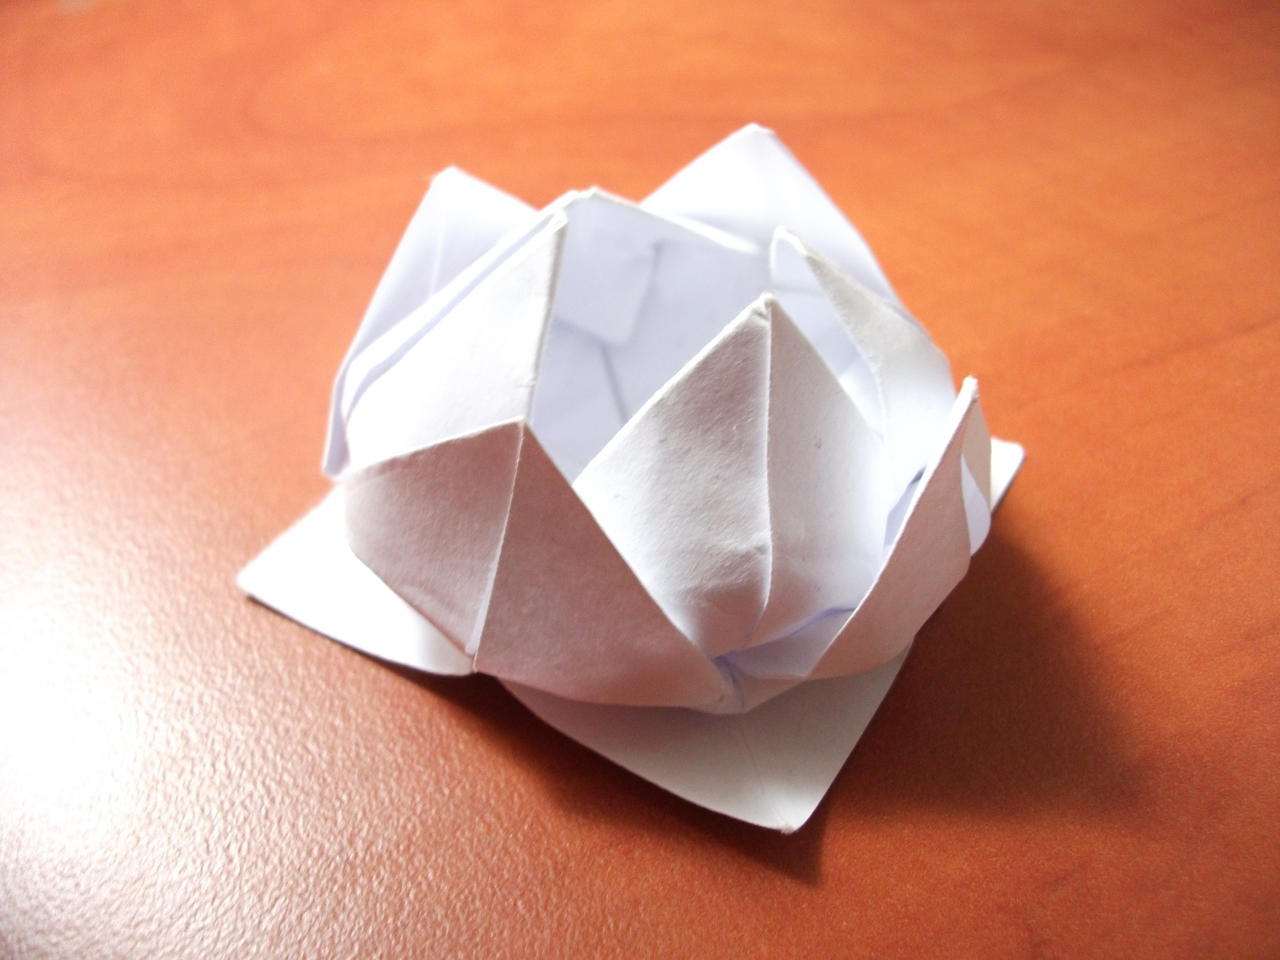 where to buy oragami paper Buy origami papers online in australia it's fun to learn about the art of origami with this collection of 51 sheets of origami paper hours of folding fun are at.